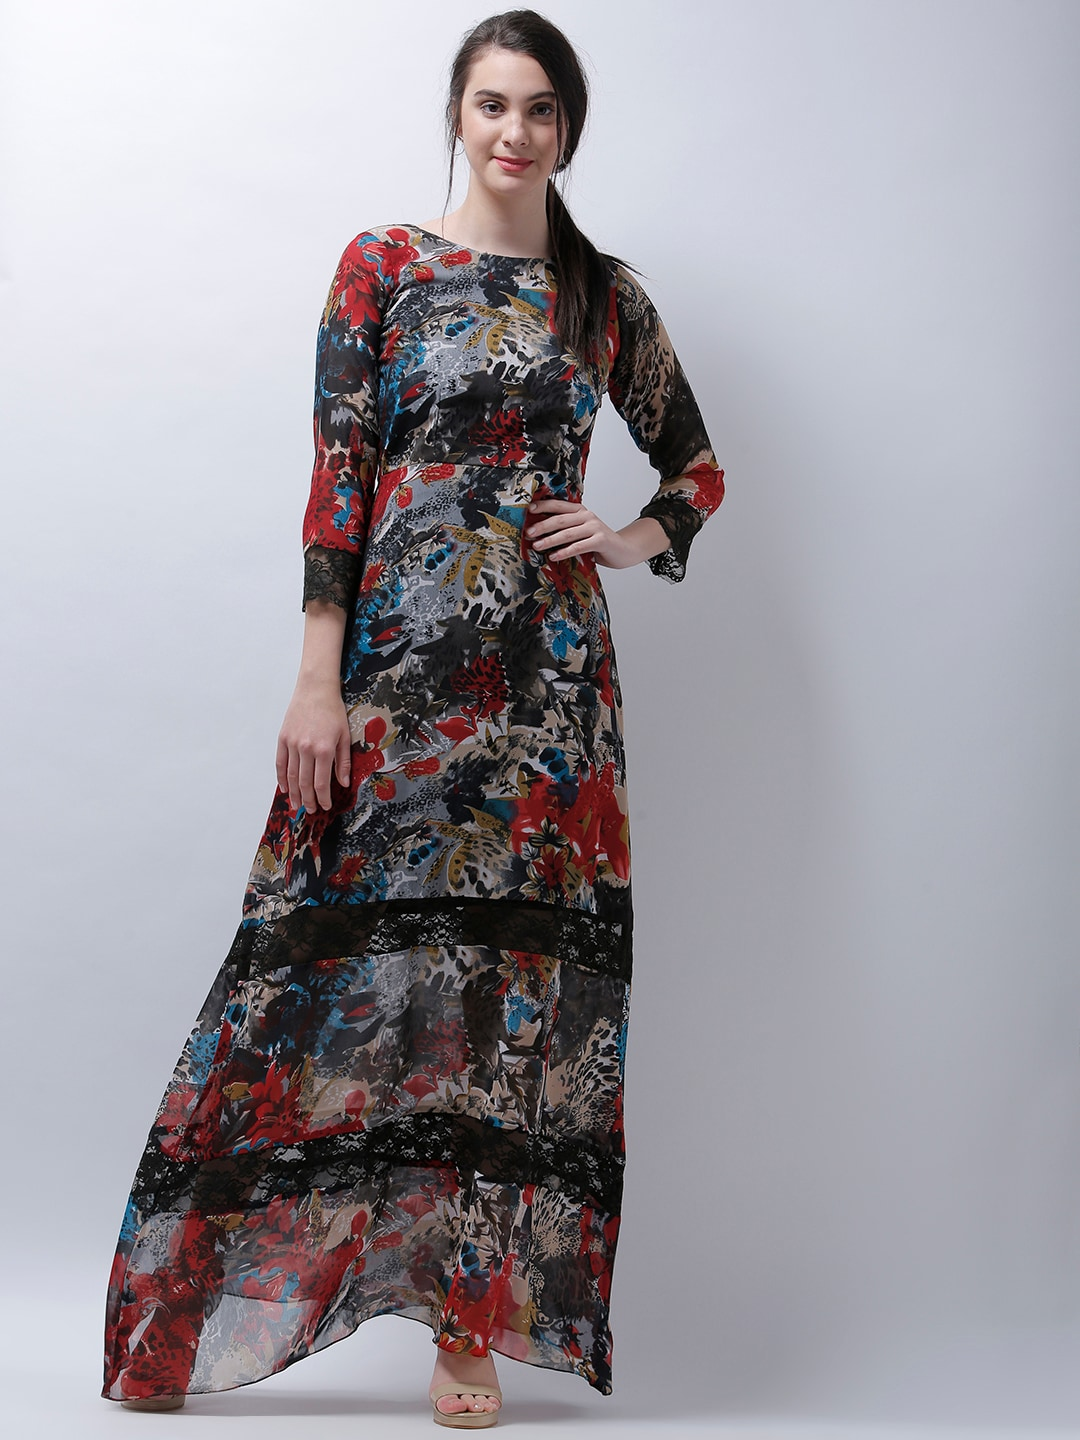 06159922d6 Athena Black Printed Maxi Dress for women price in India on 30th ...